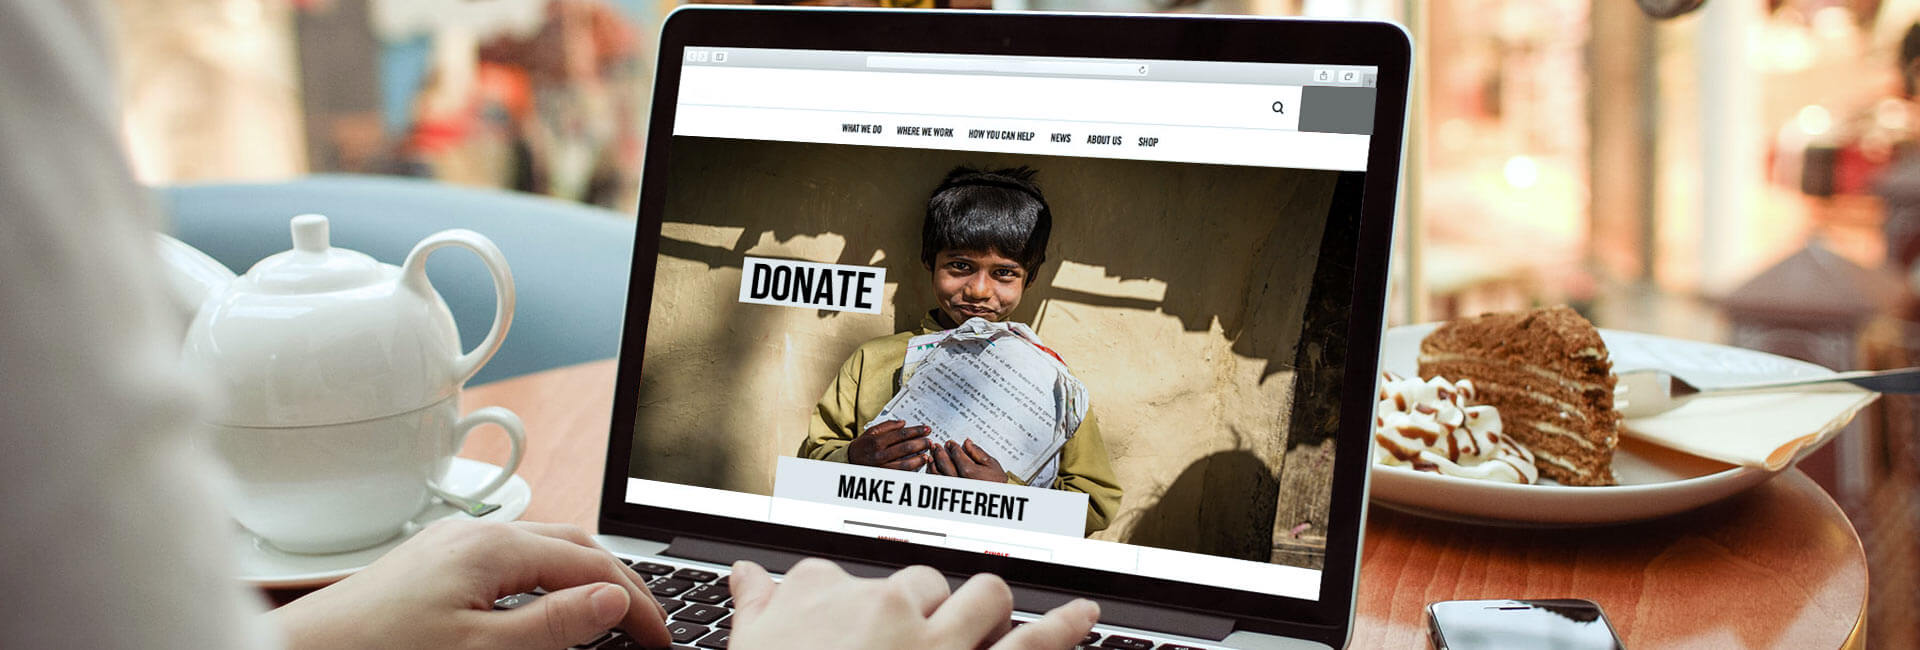 Online crowdfunding in India: myths vs facts